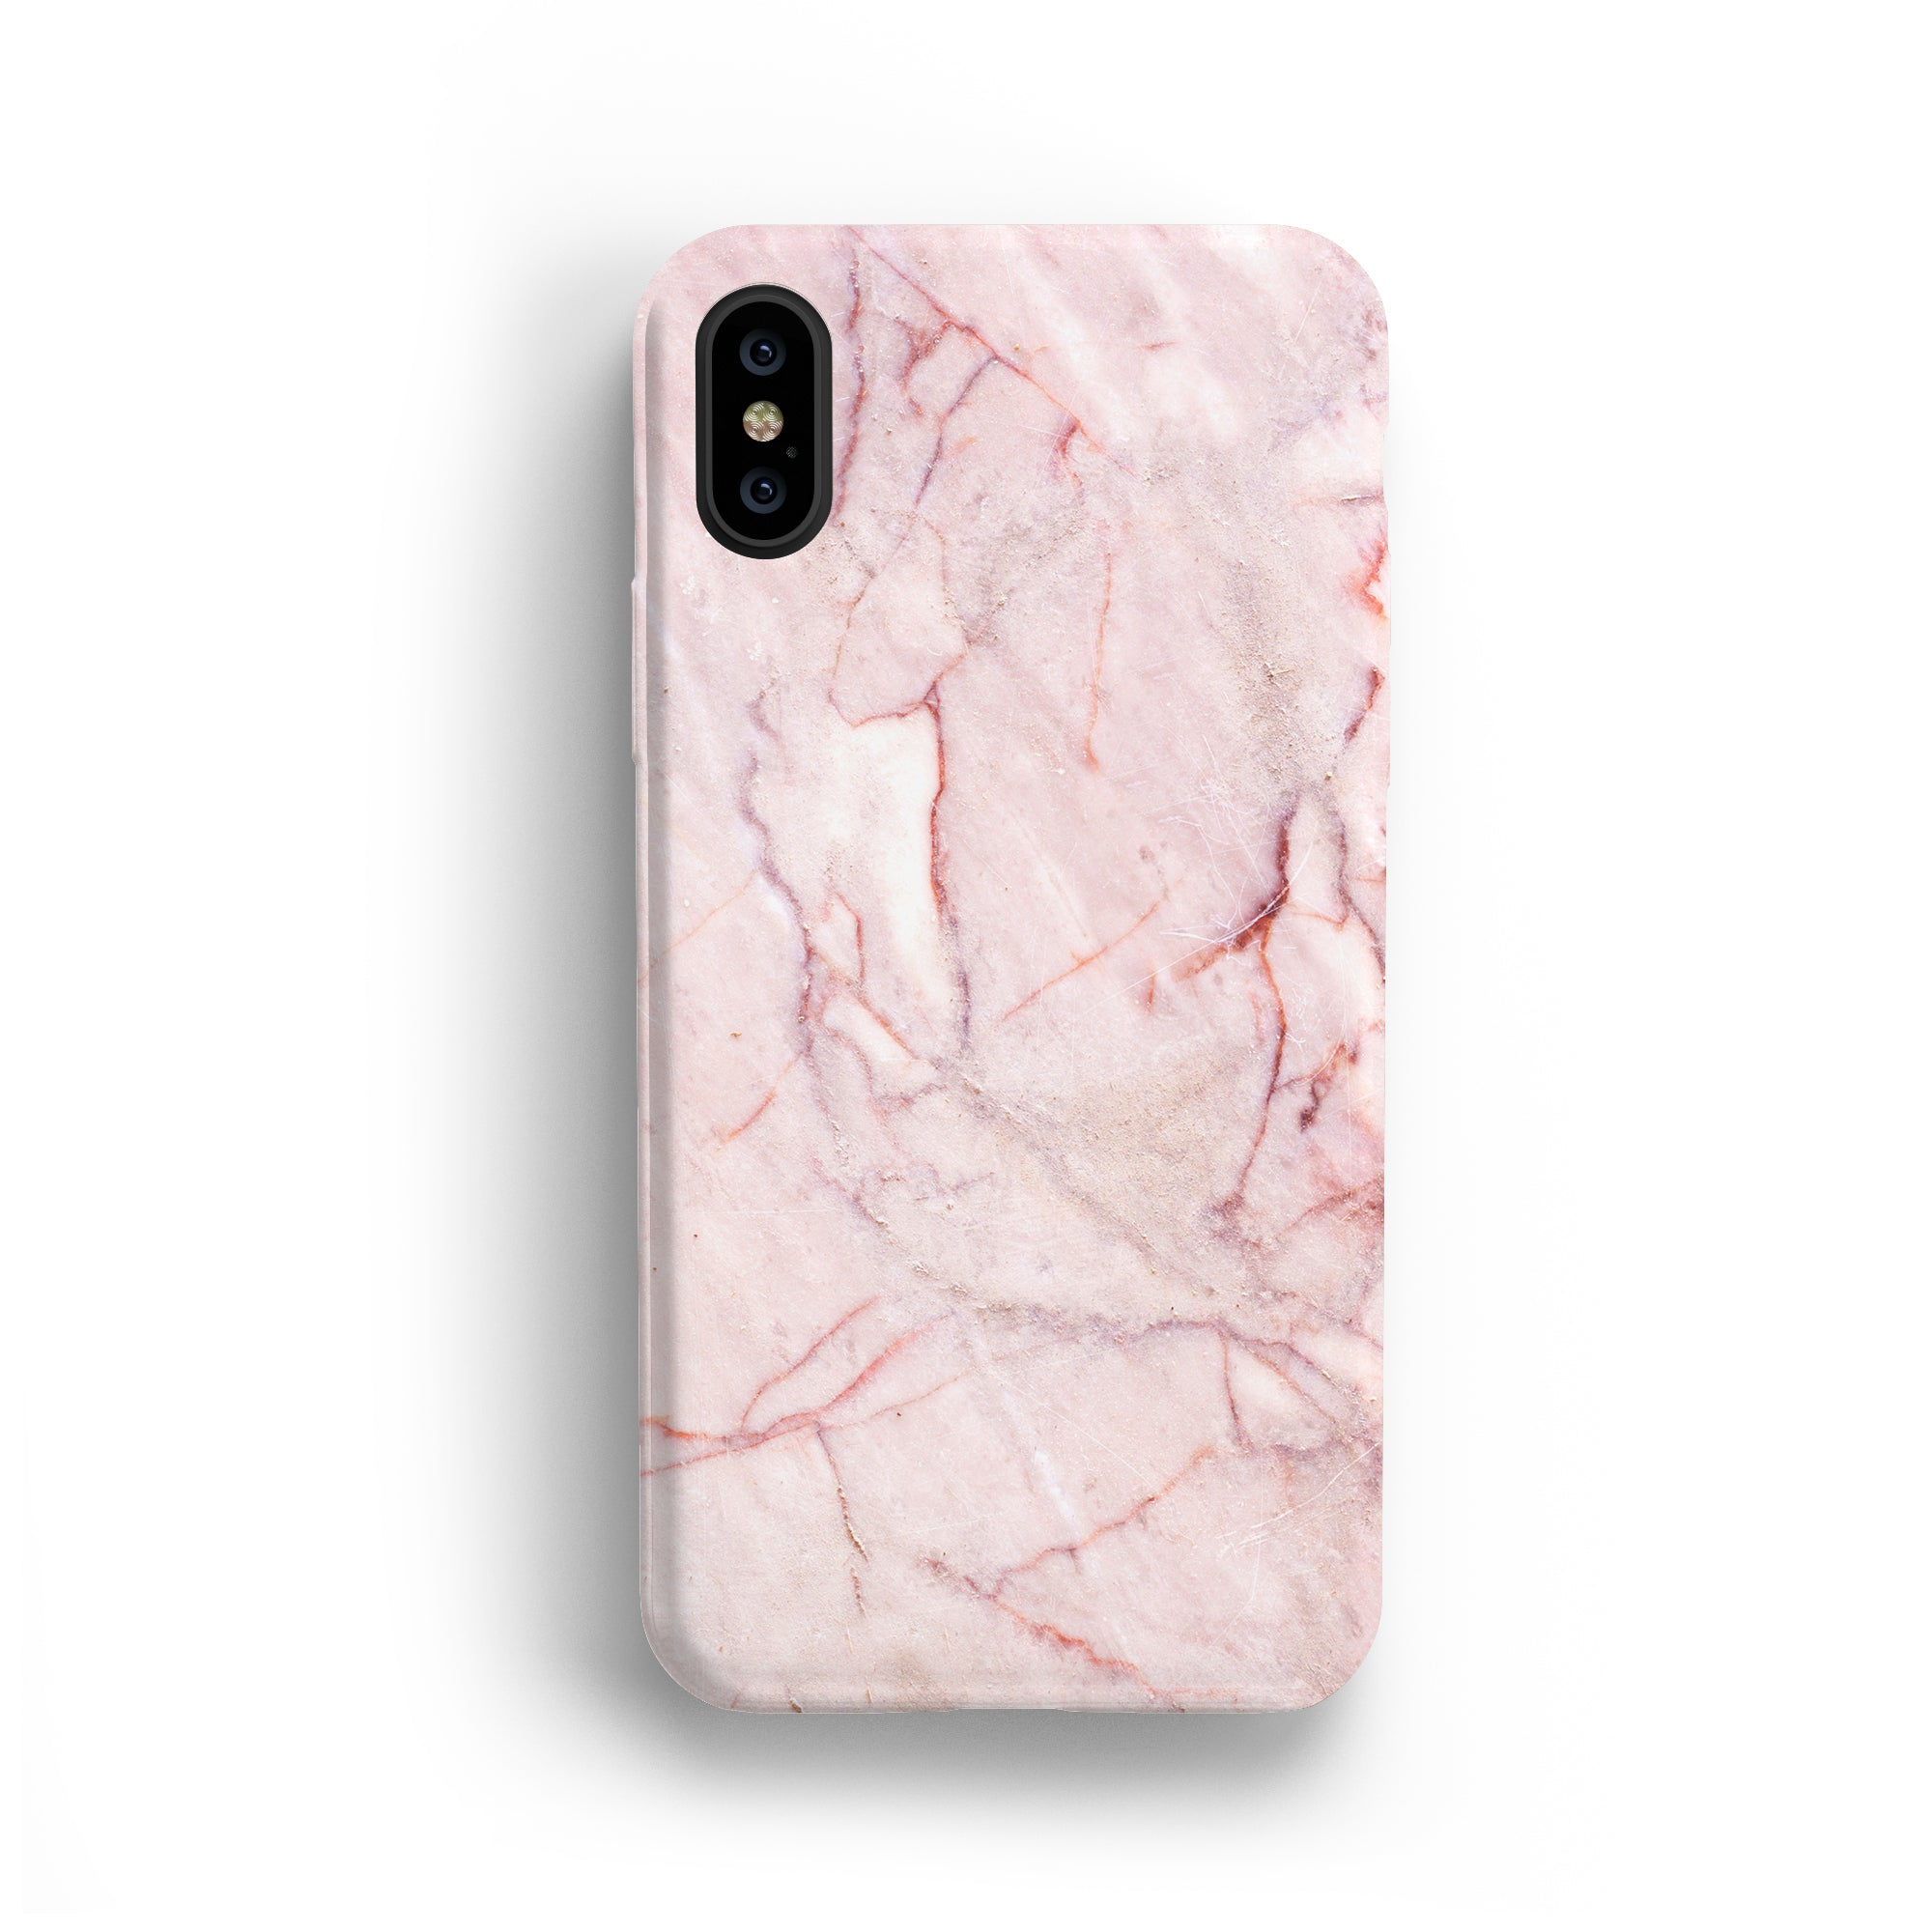 PINK MARBLE IPHONE CASE + SCREEN PROTECTOR